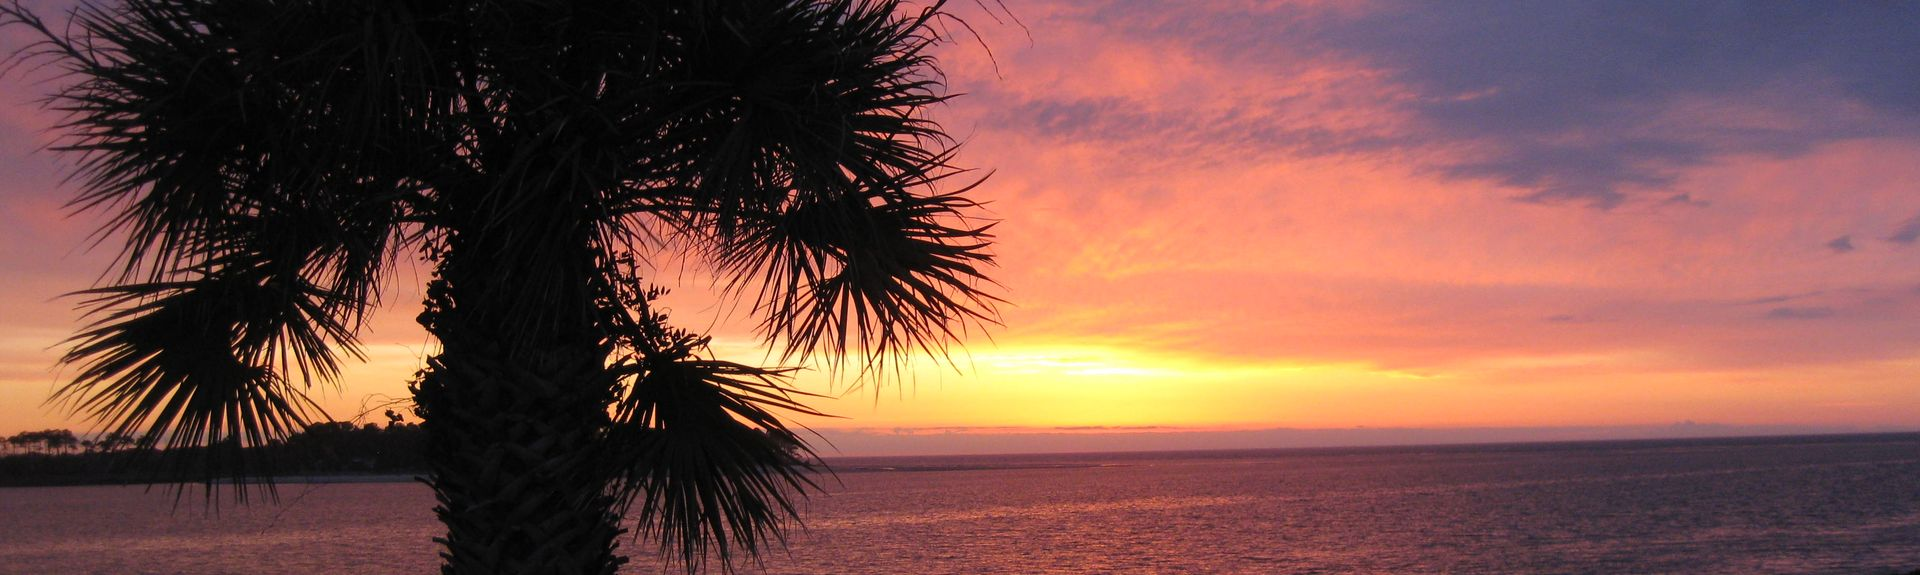 Hunting Island State Park, South Carolina, USA